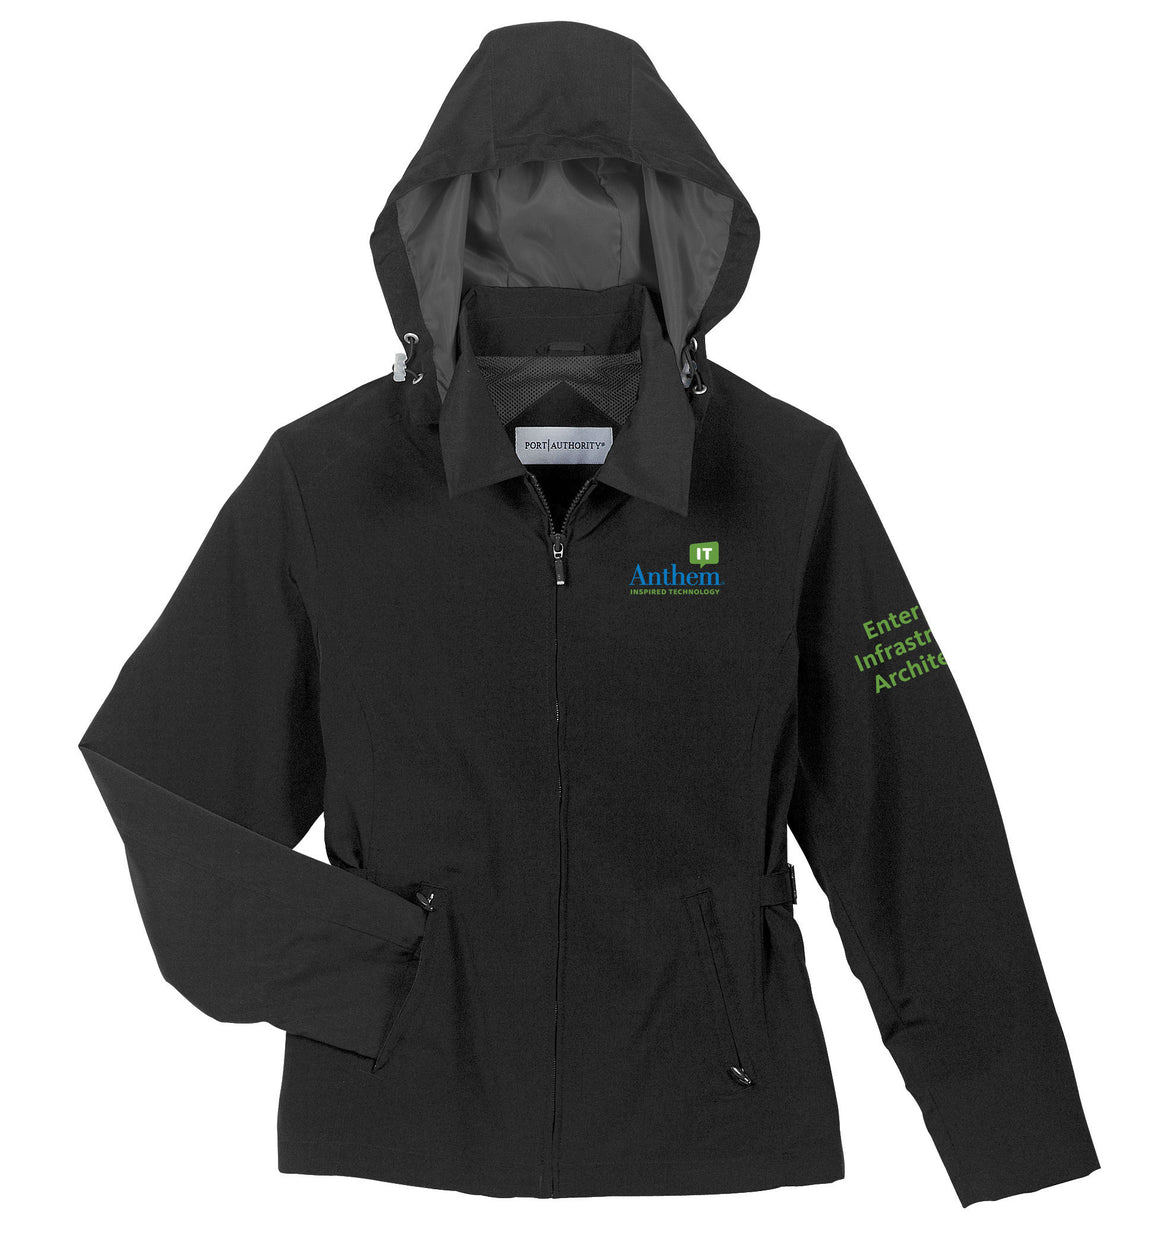 Ladies Port Authority Legacy Jacket - EIA